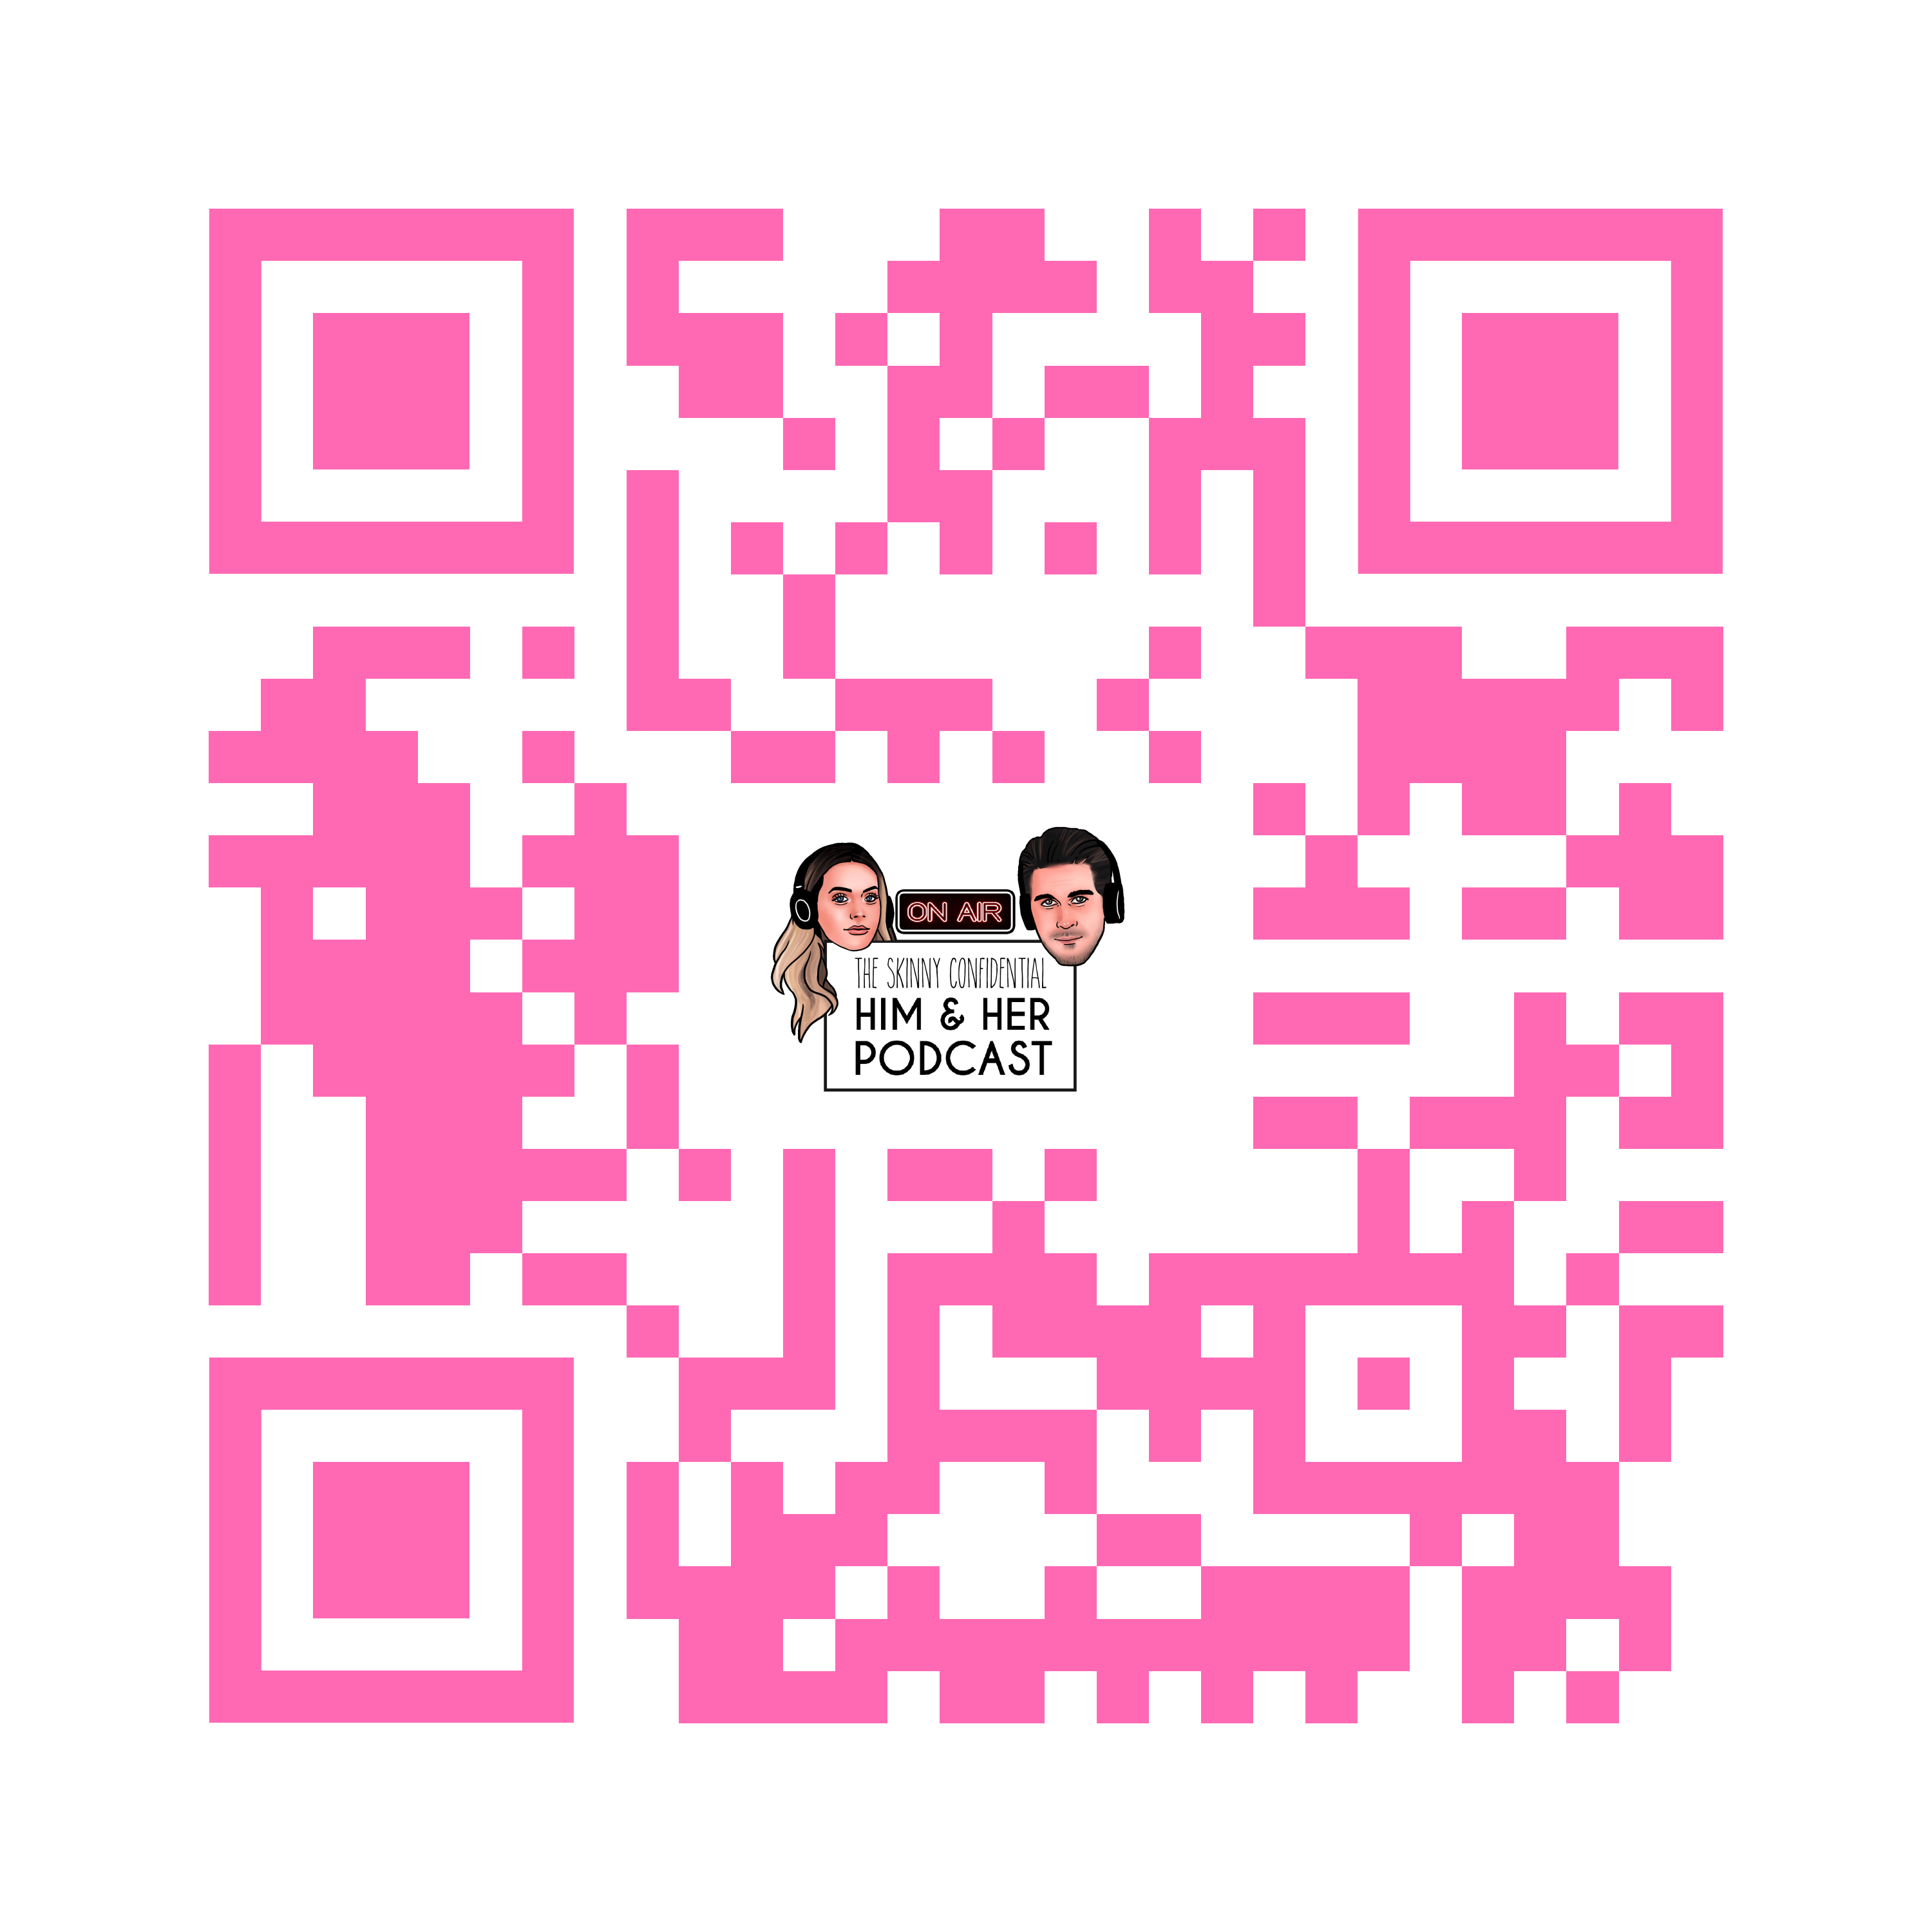 the grove la podcast dear media entertainment by tsc him her show qr code